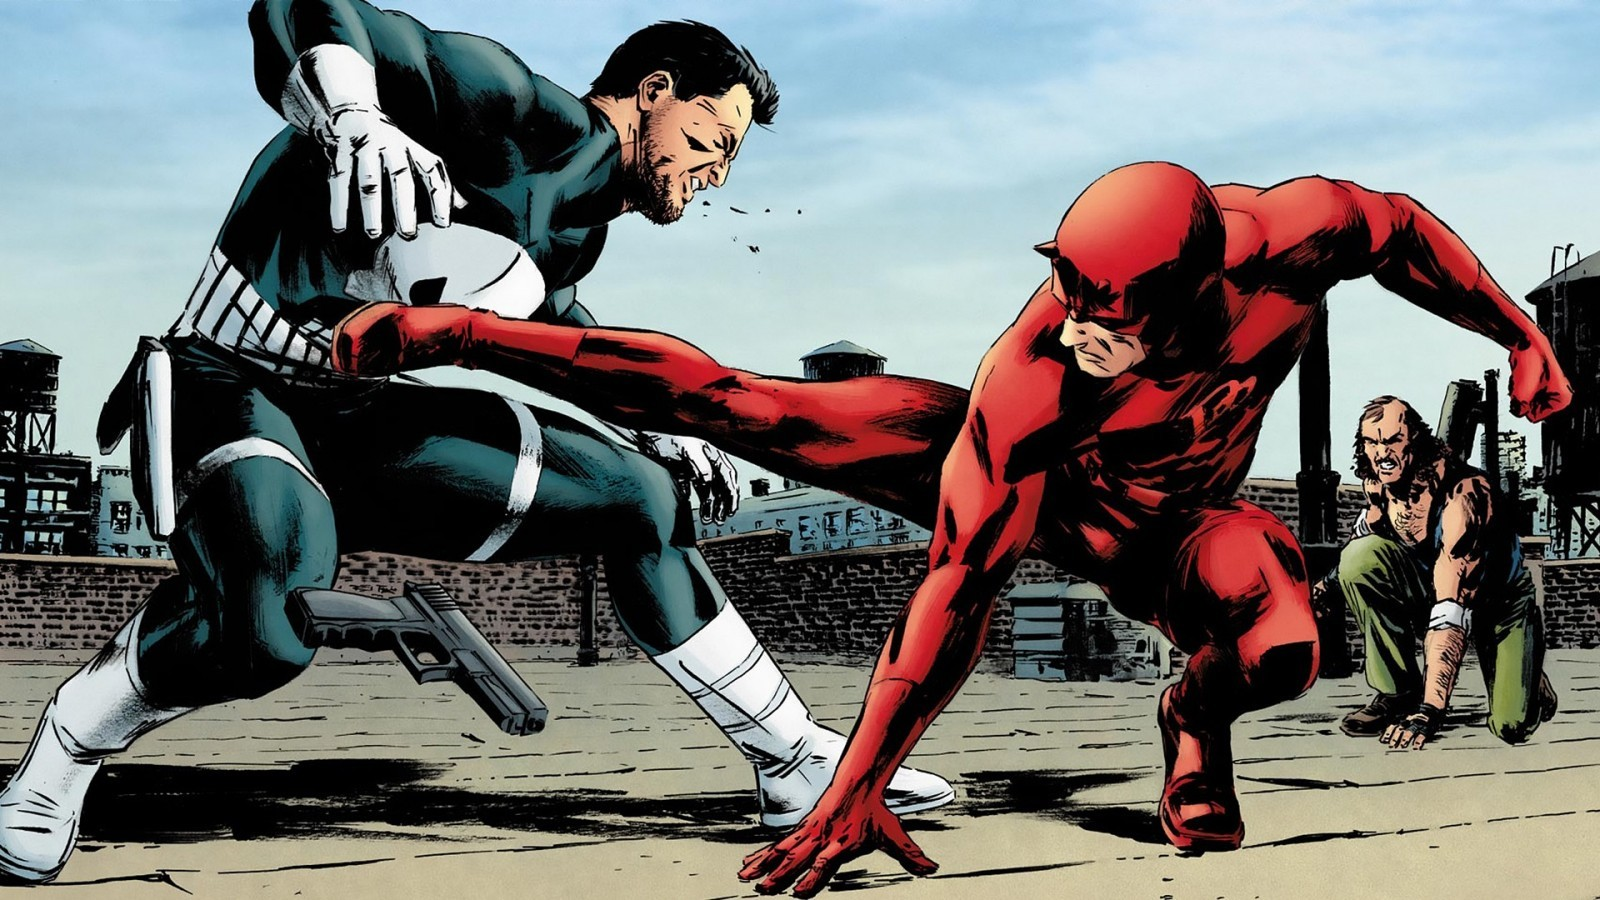 comics_daredevil_the_punisher_1600x900_58563